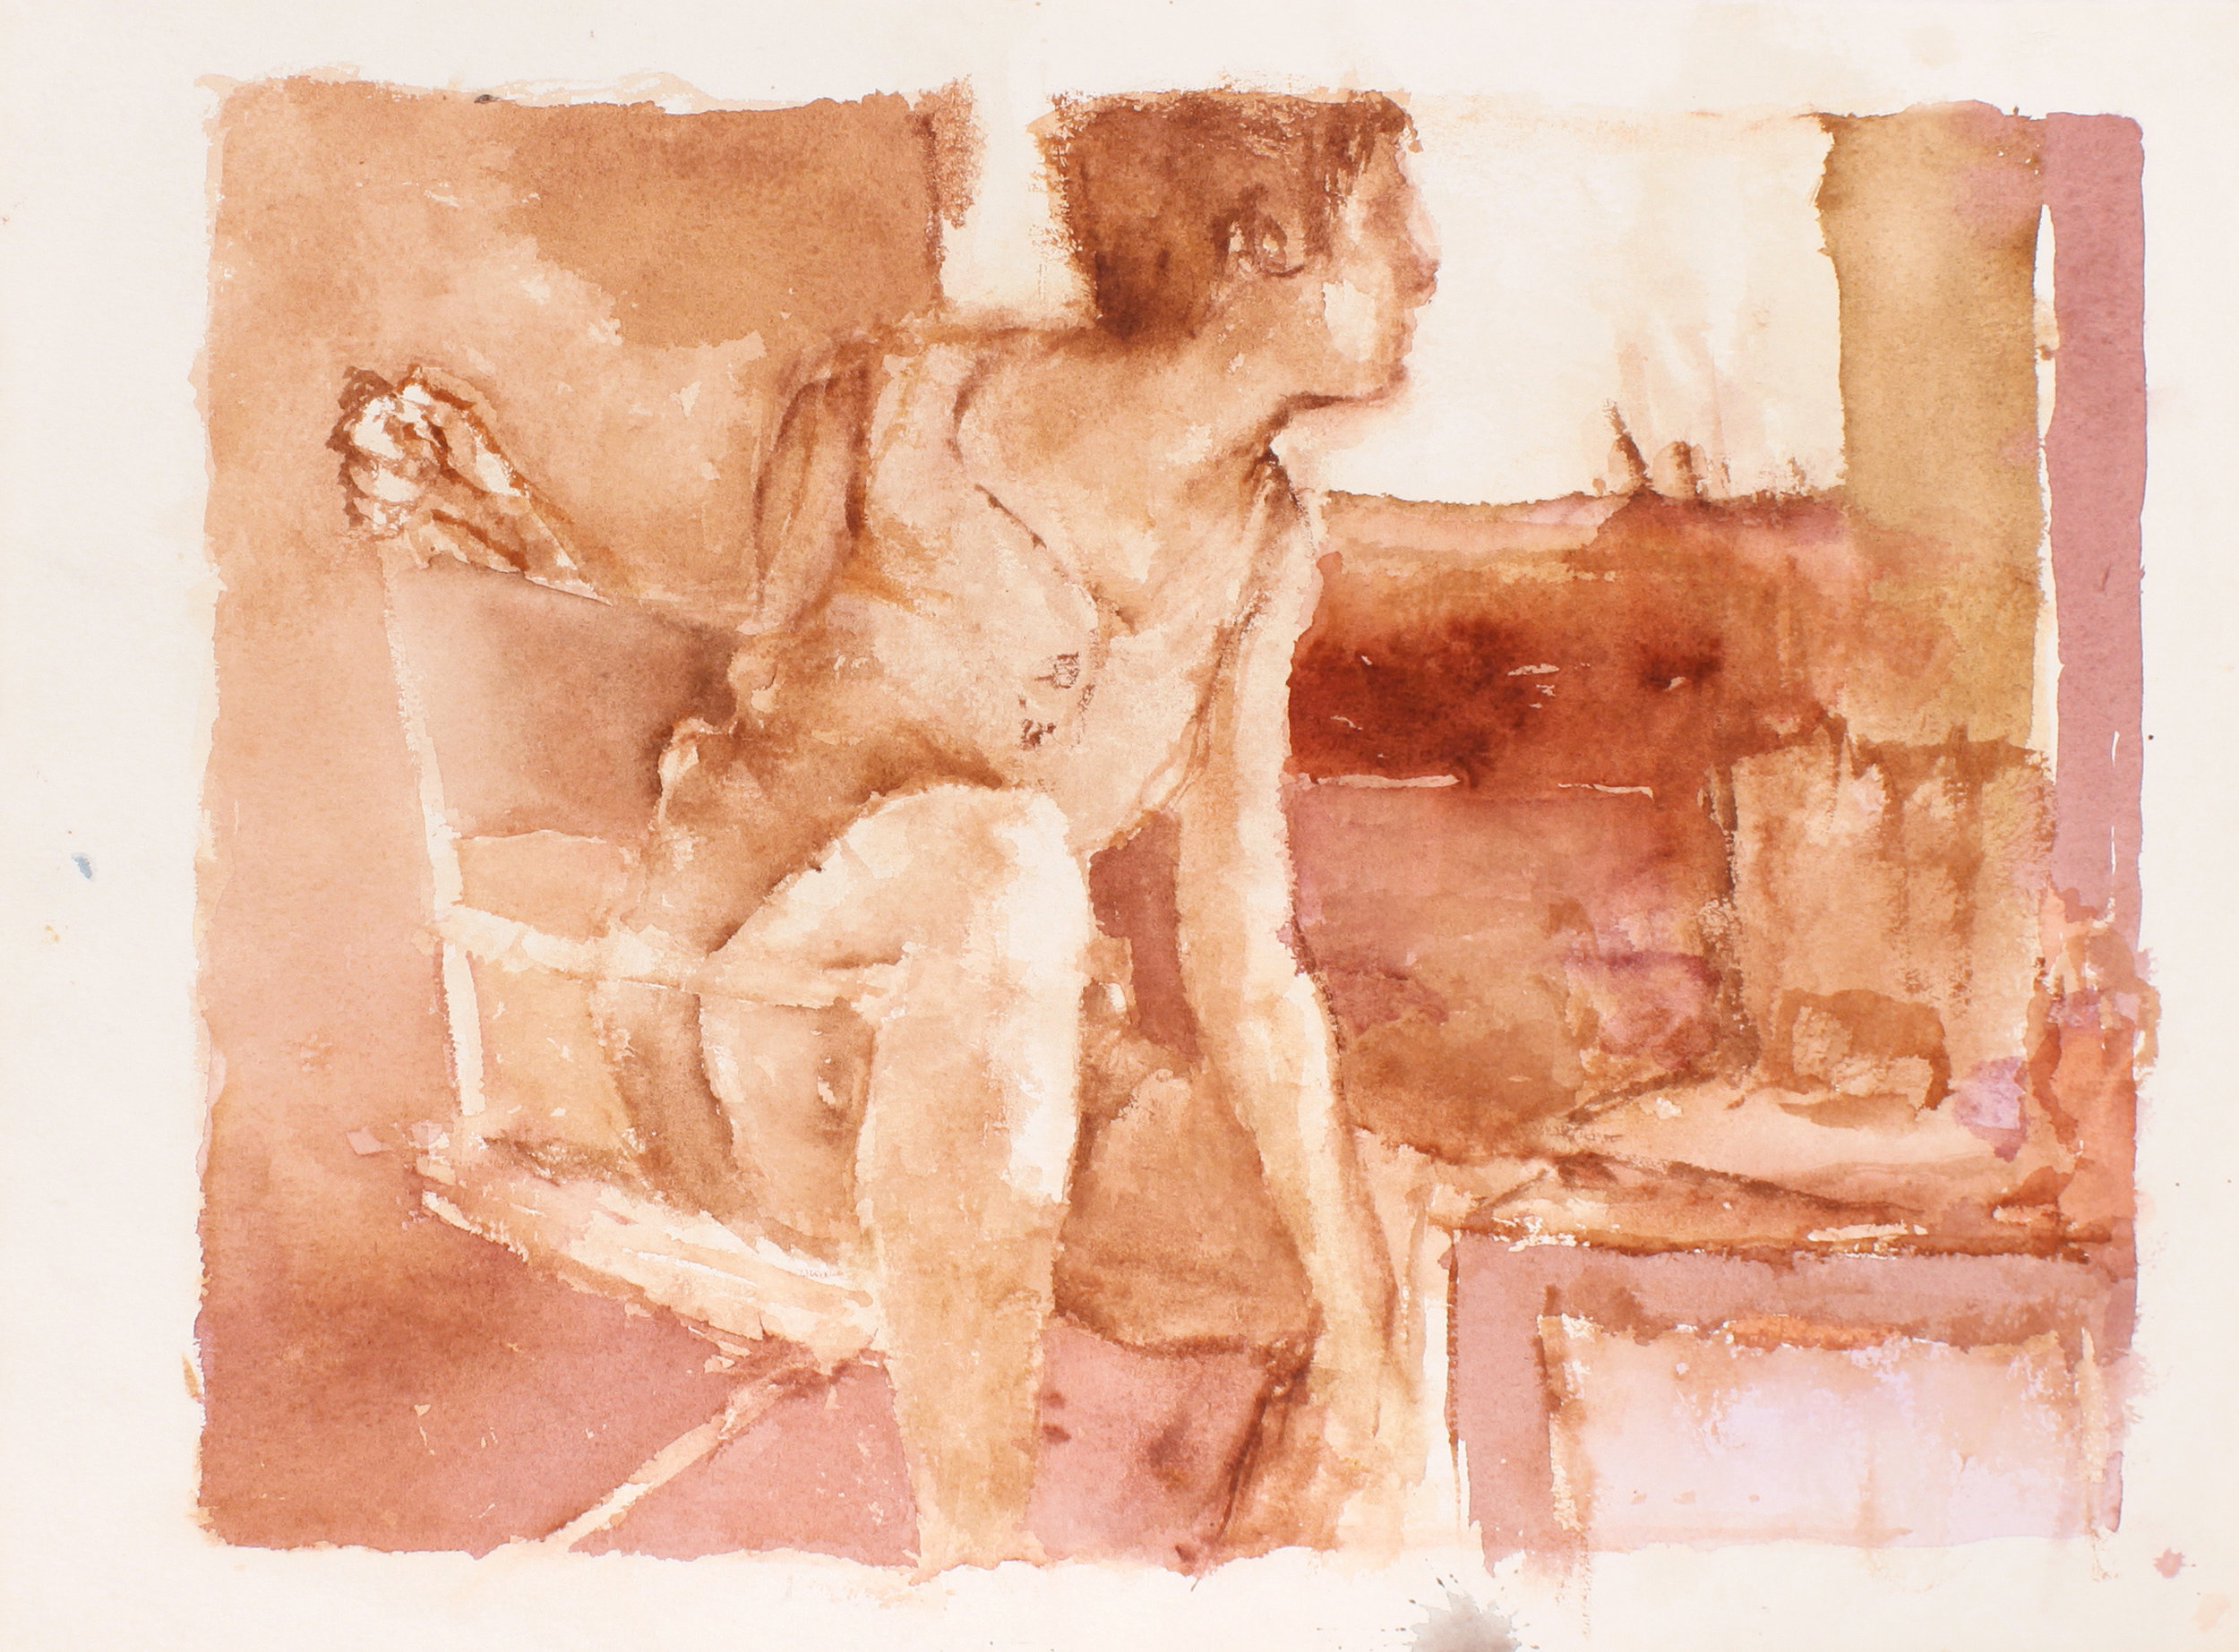 1989_Sophie_in_Directors_Chair_in_Studio_Turned_to_Right_watercolour_on_paper_11x15in_WPF601.jpg